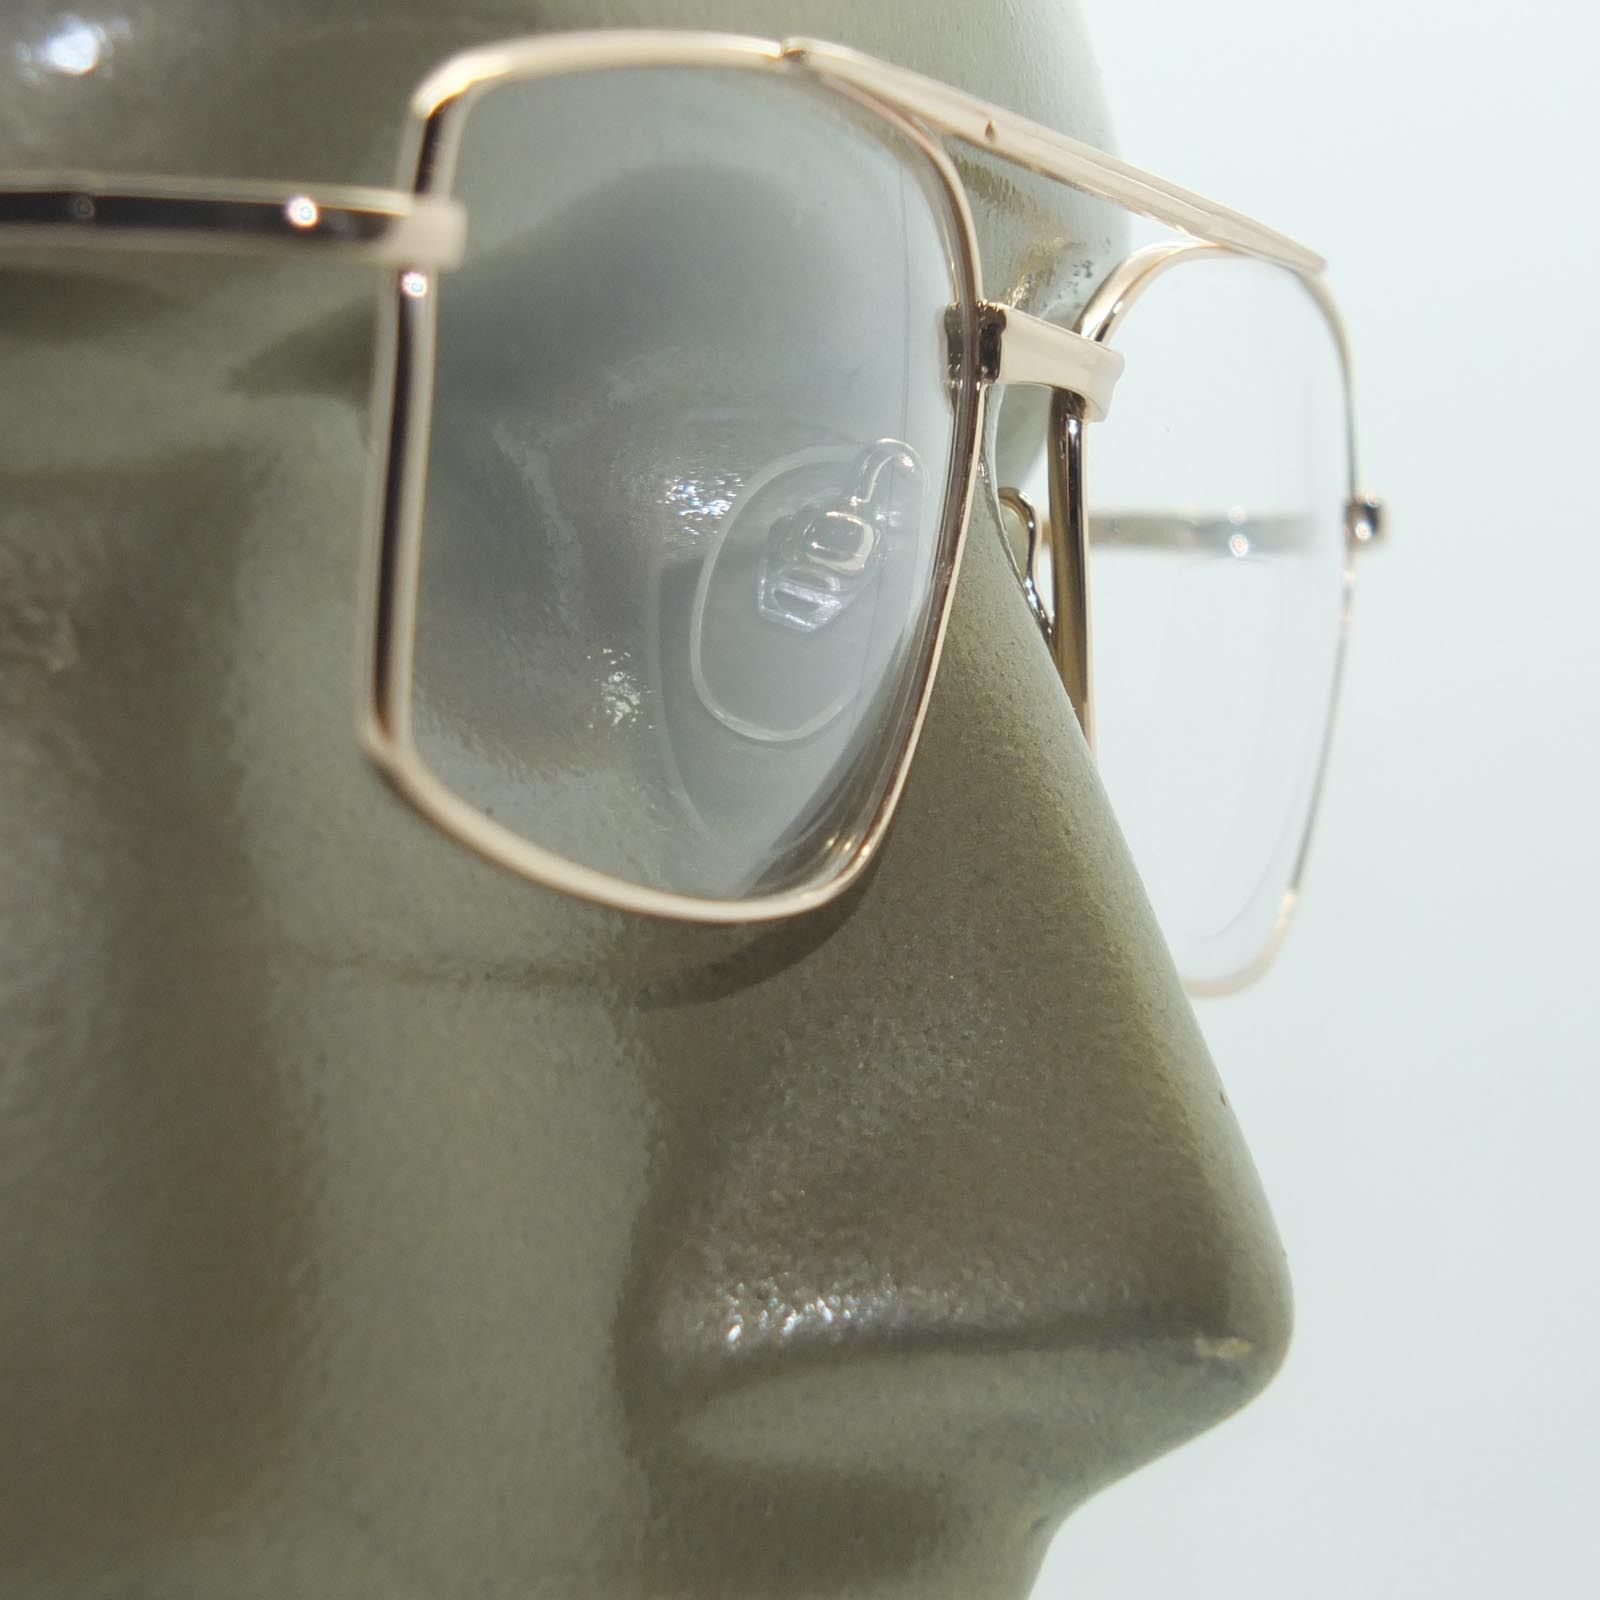 a7cd35f3f15 S l1600. S l1600. Bifocal Reading Glasses Square Aviator 80 s Style Gold Metal  Frame +2.00 Lens